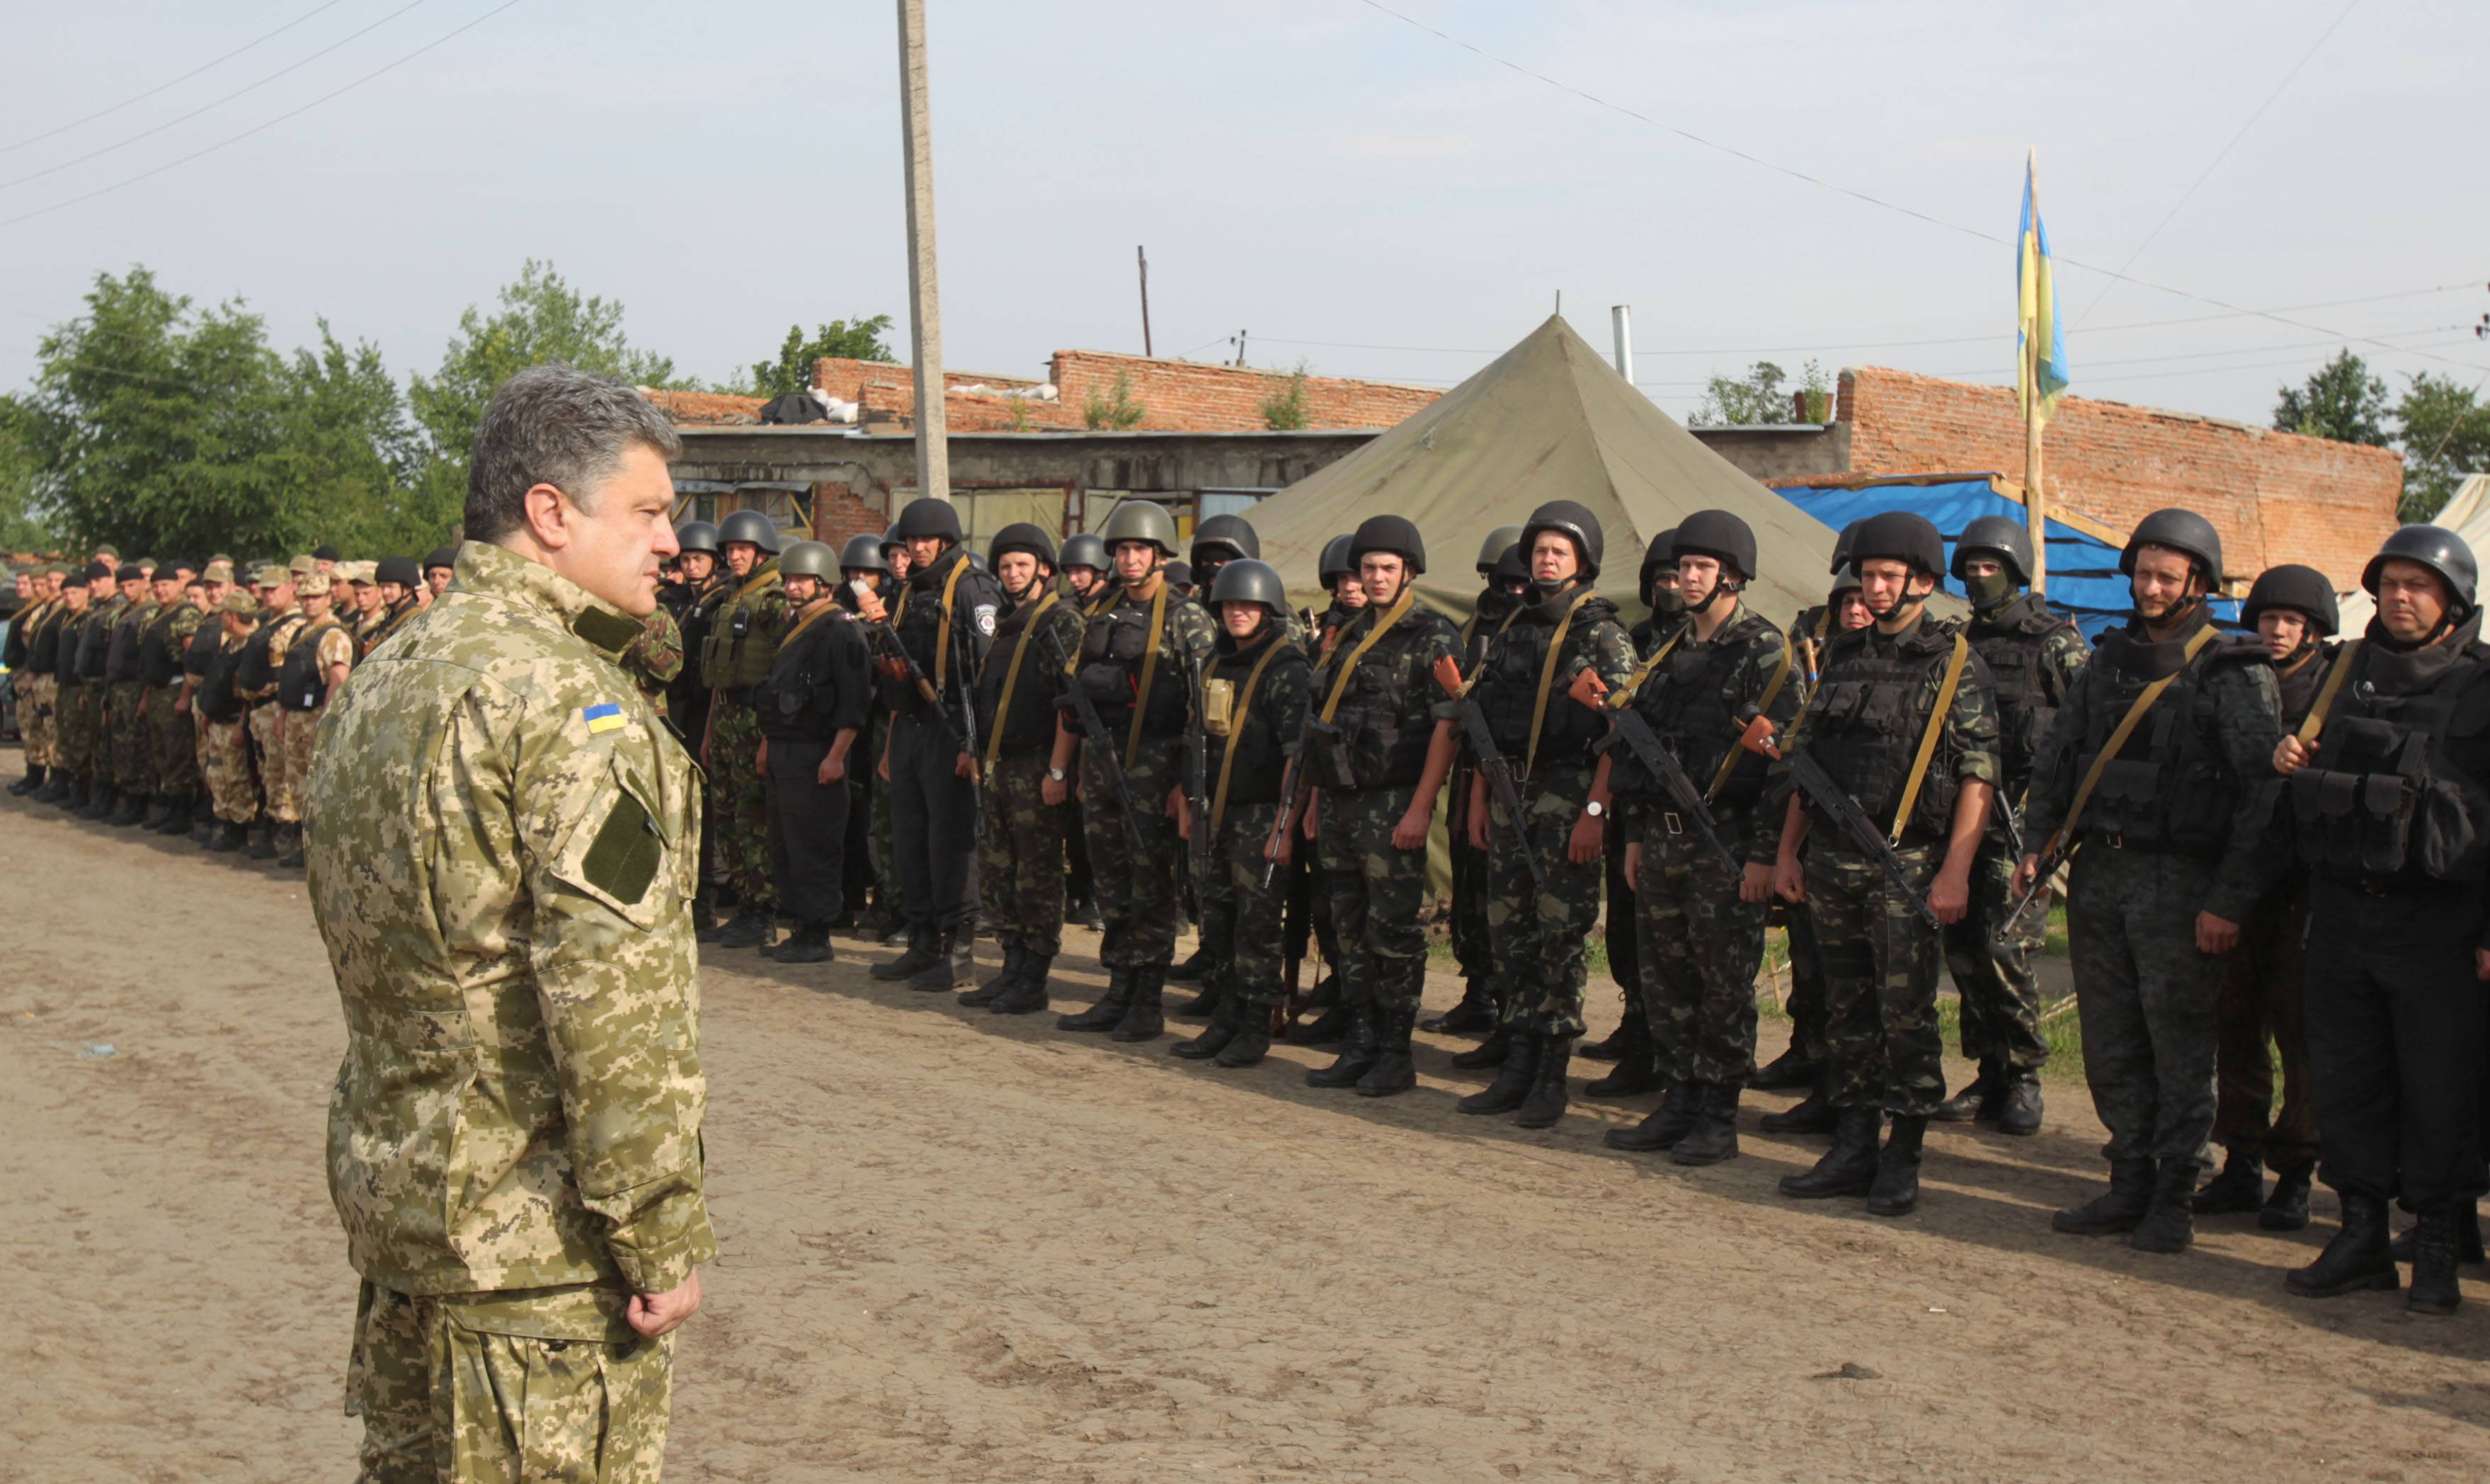 Ukrainian President Petro Poroshenko talks Friday with Ukrainian soldiers at a military base close to Slovyansk, in the Donetsk region, Ukraine.